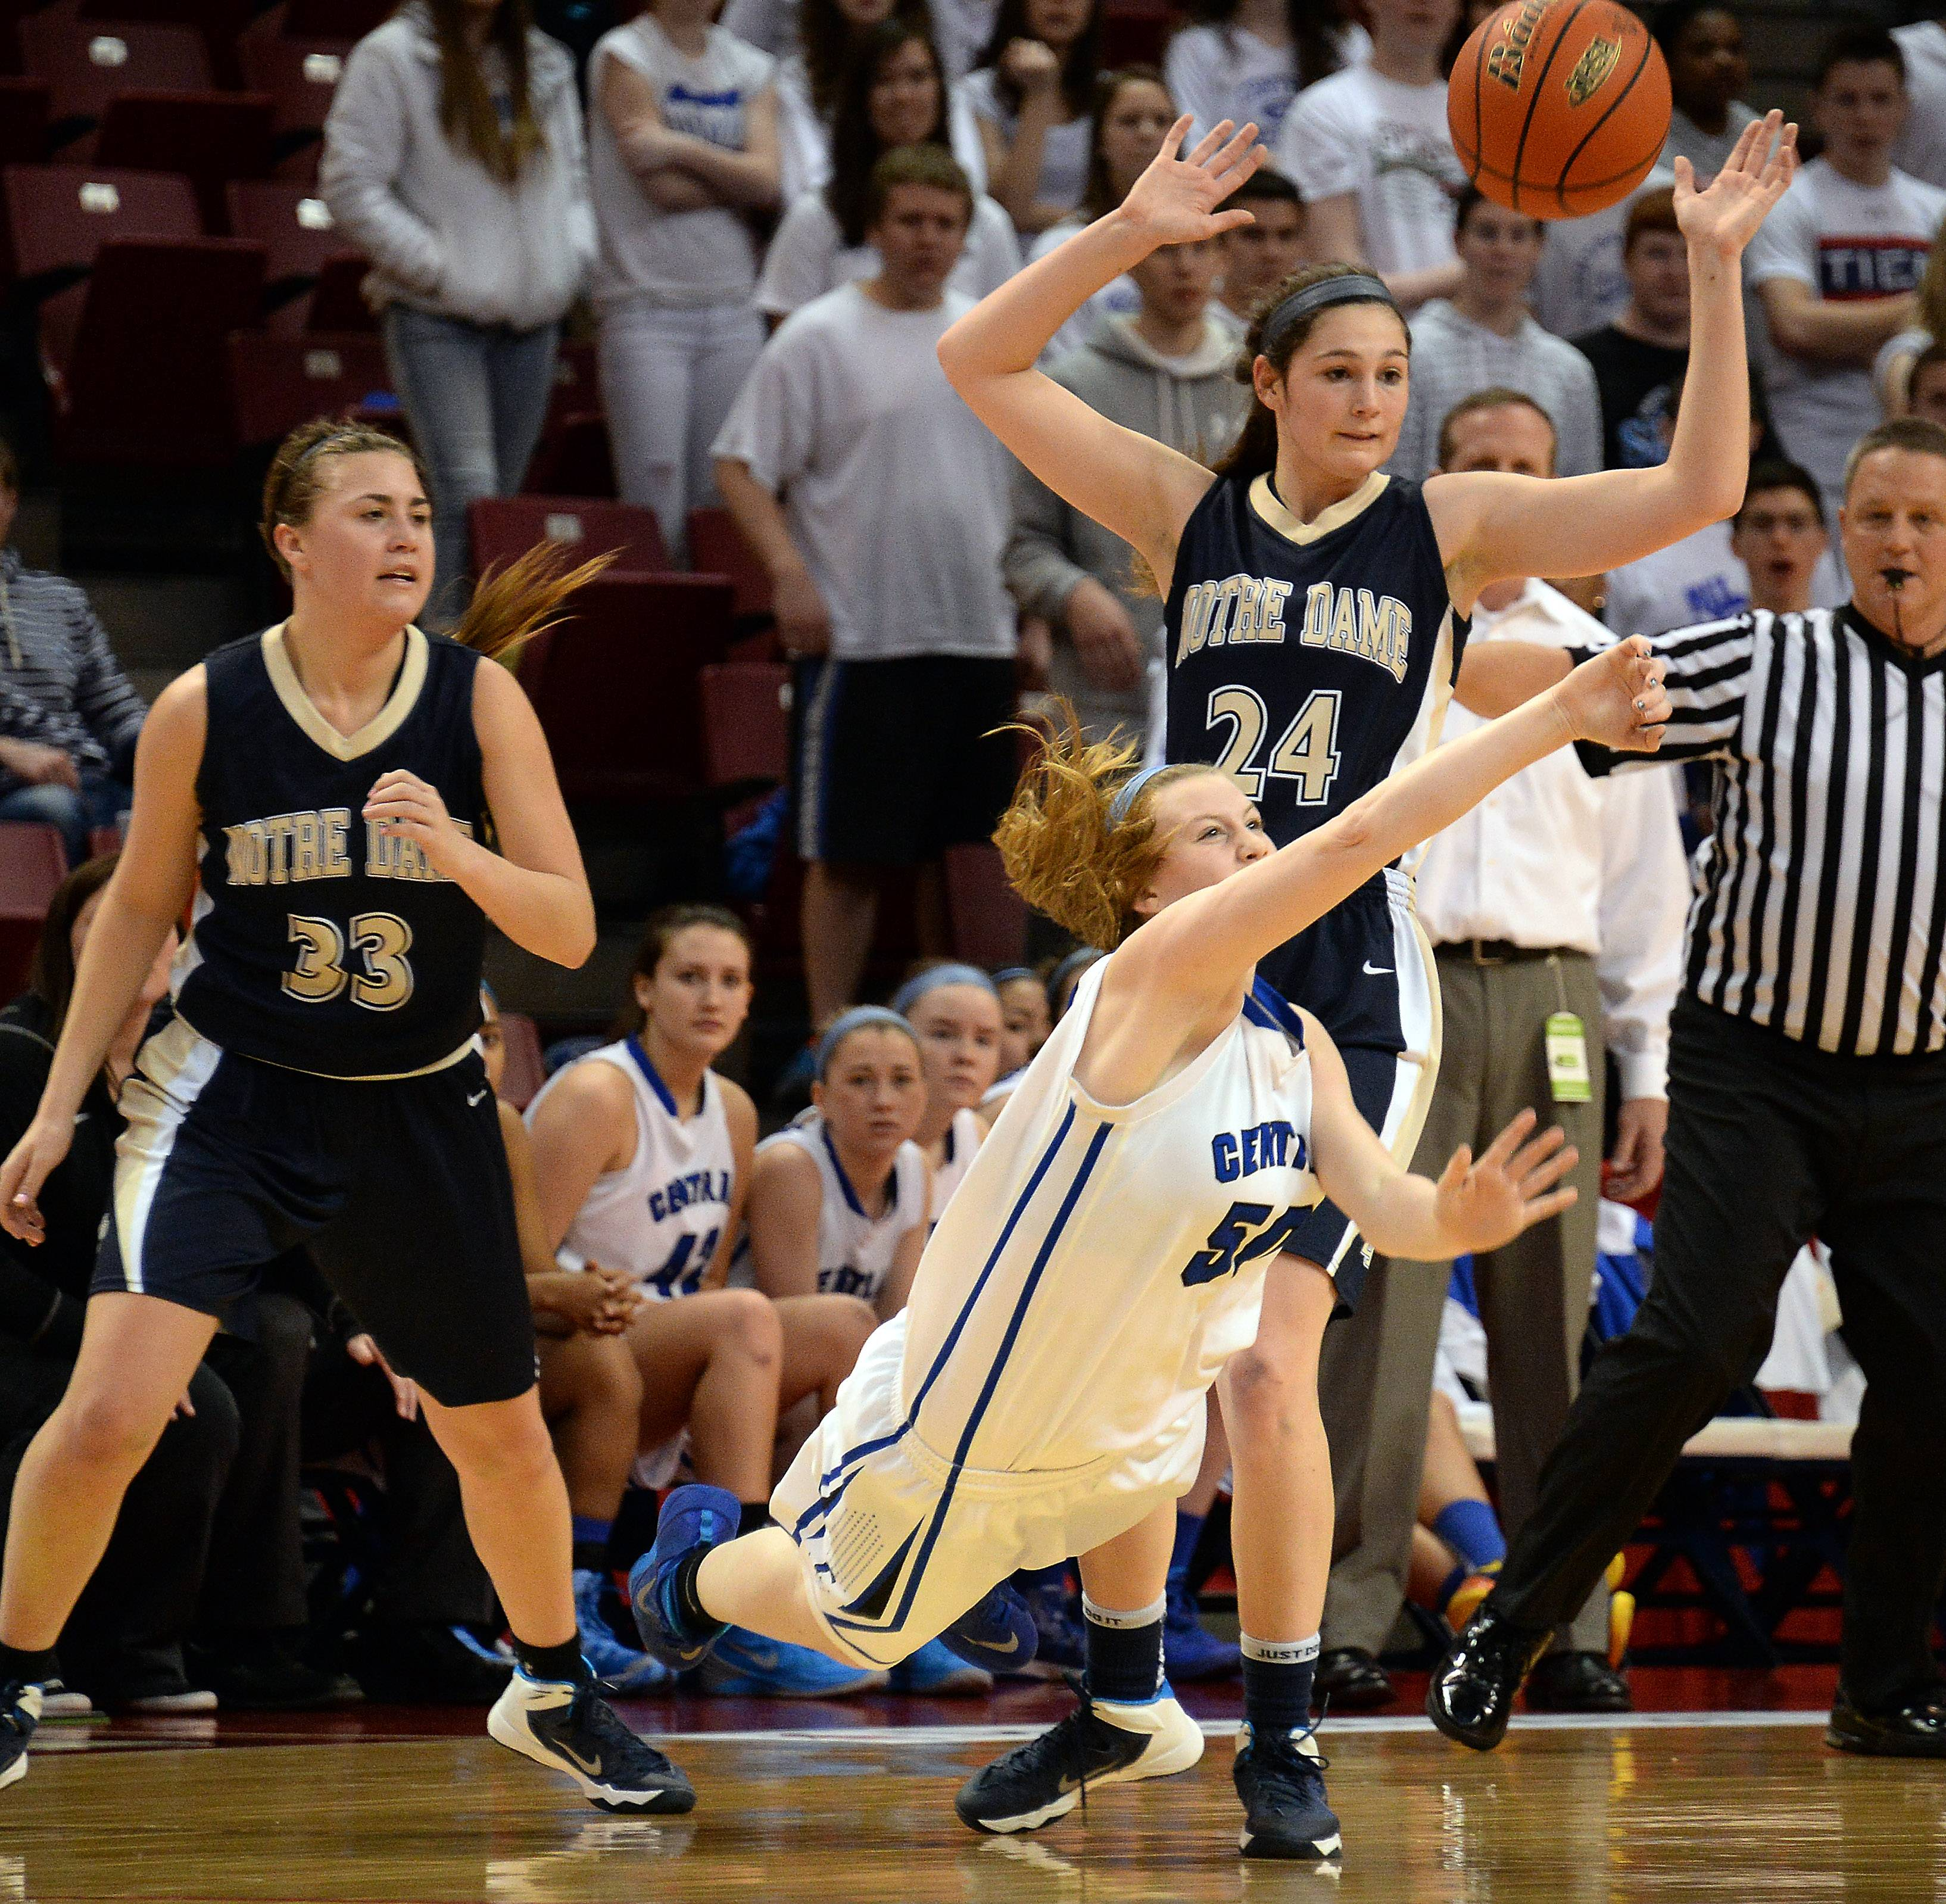 Burlington Central's Becca Gerke passes the ball as she gets tripped up by Quincy Notre Dame's Mary Beth Hugenberg in the first period of girls state basketball in the third place game in Normal on Saturday.